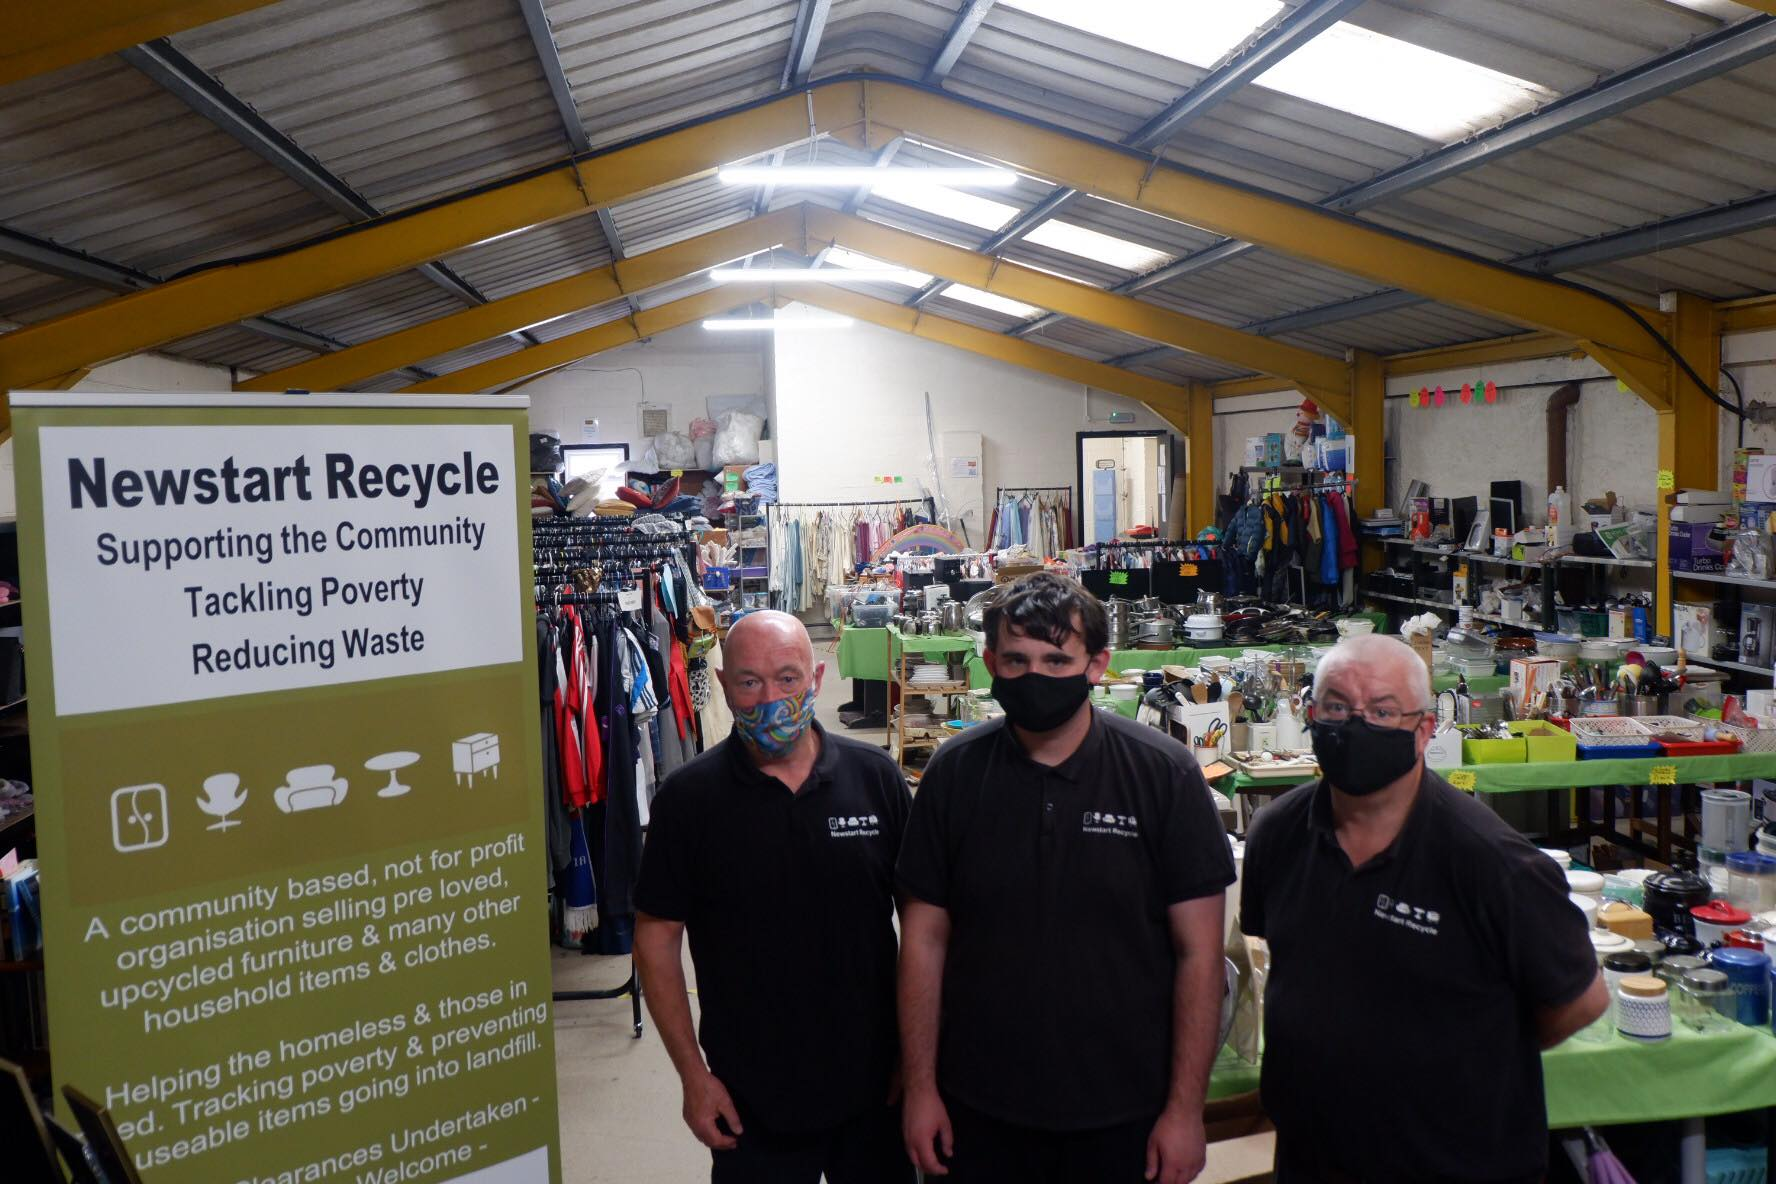 Charity keeps busy in fight against poverty and waste